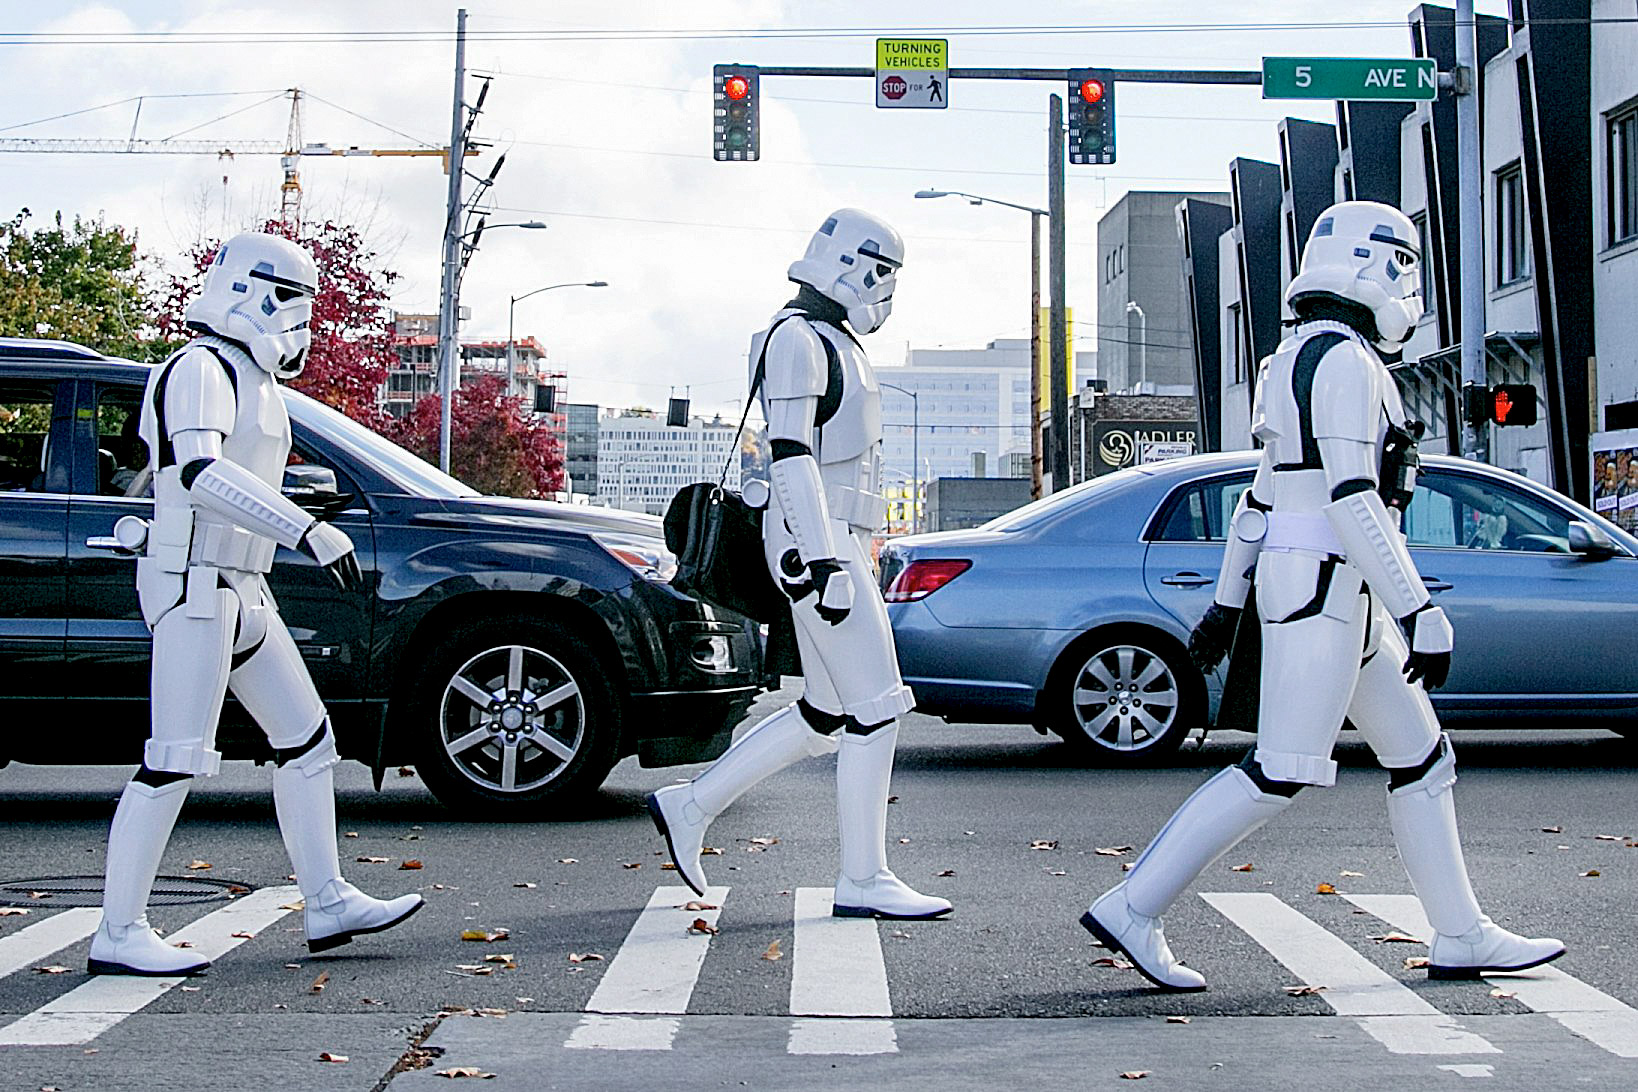 JOHNNY ANDREWS PHOTOGRAPHY : EDITORIAL :: Star Wars stormtroopers